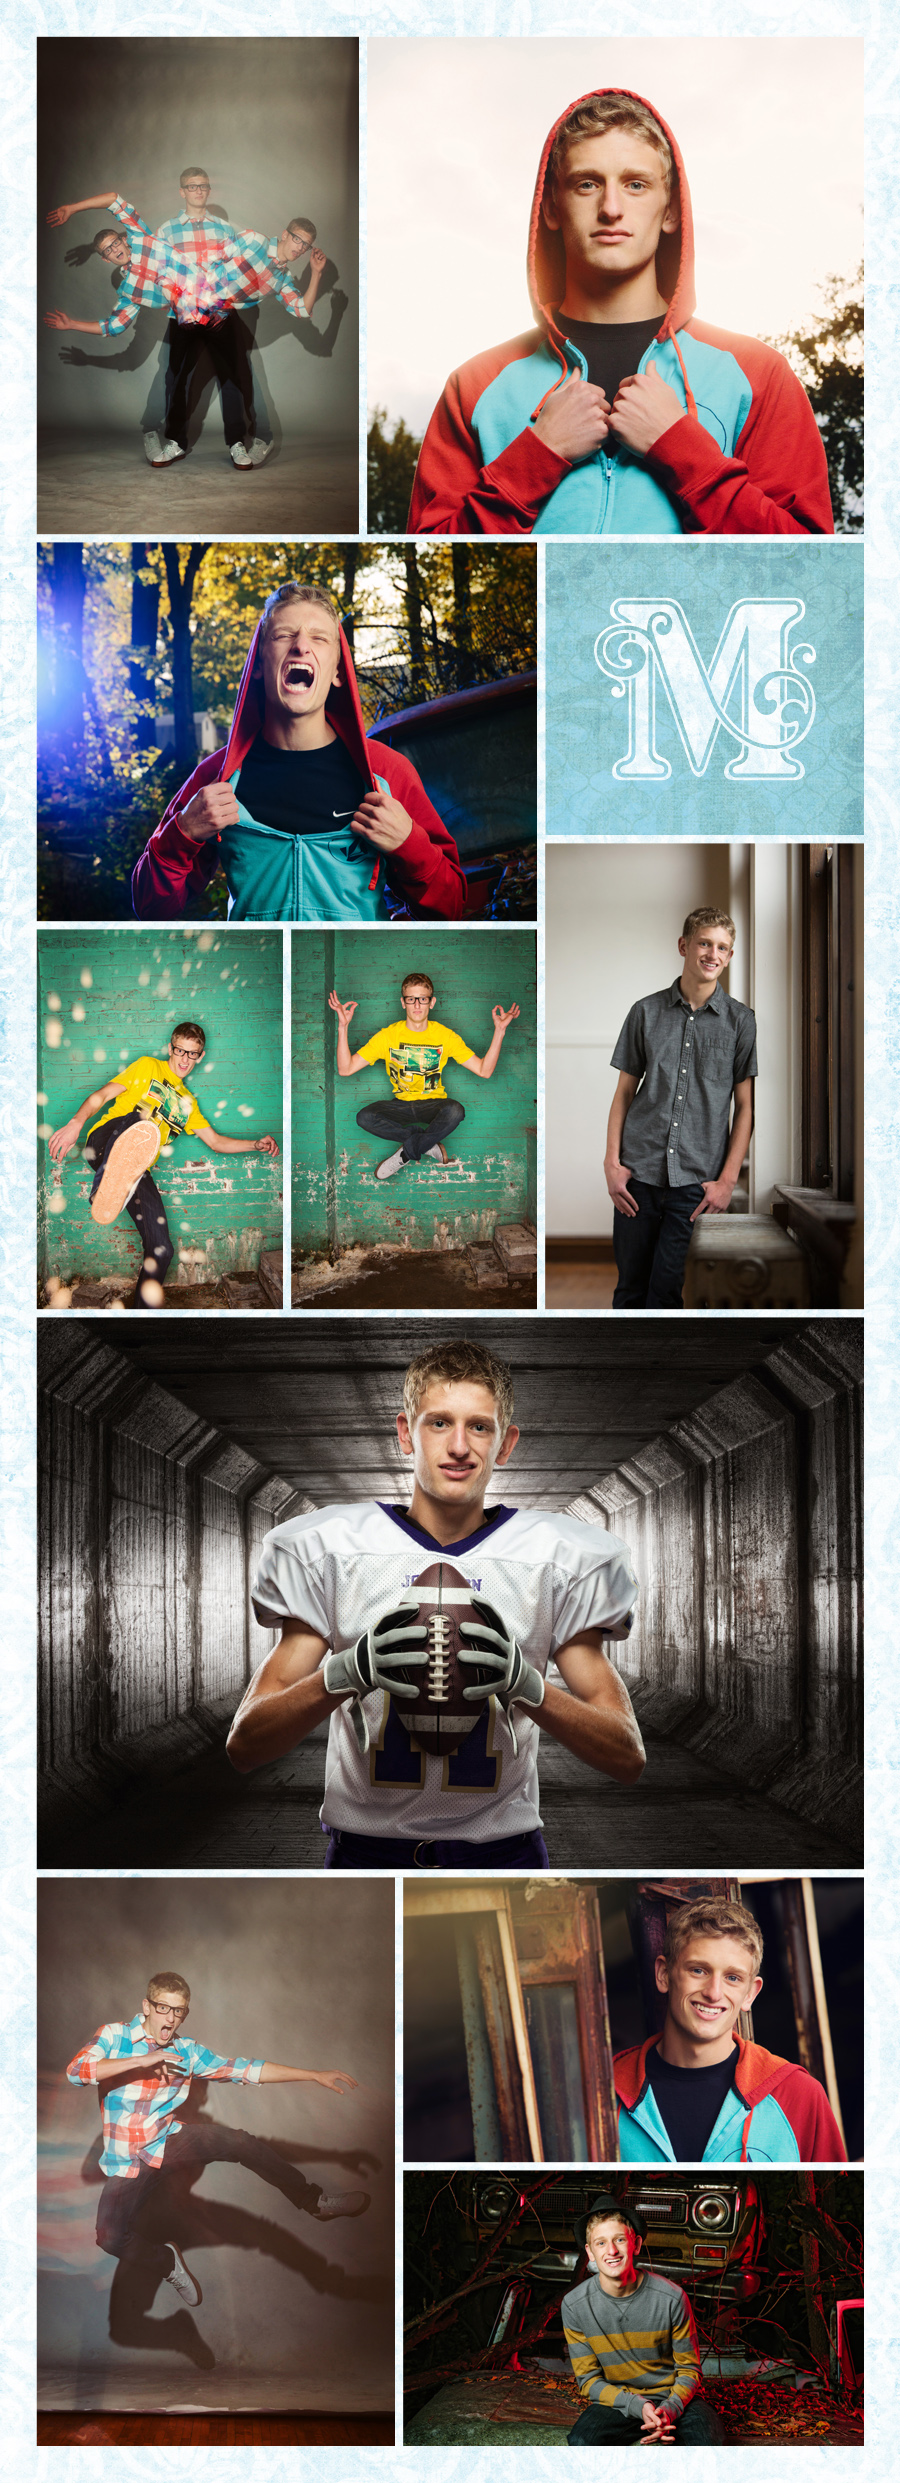 groovy photos of Johnston high school senior Alex rice playing football, looking fly in a hat, hanging out in a junkyard, playing with multiple exposures, being crazy, levitating, looking fashionable and being an all around awesome guy at McClanahan Studio in Ames